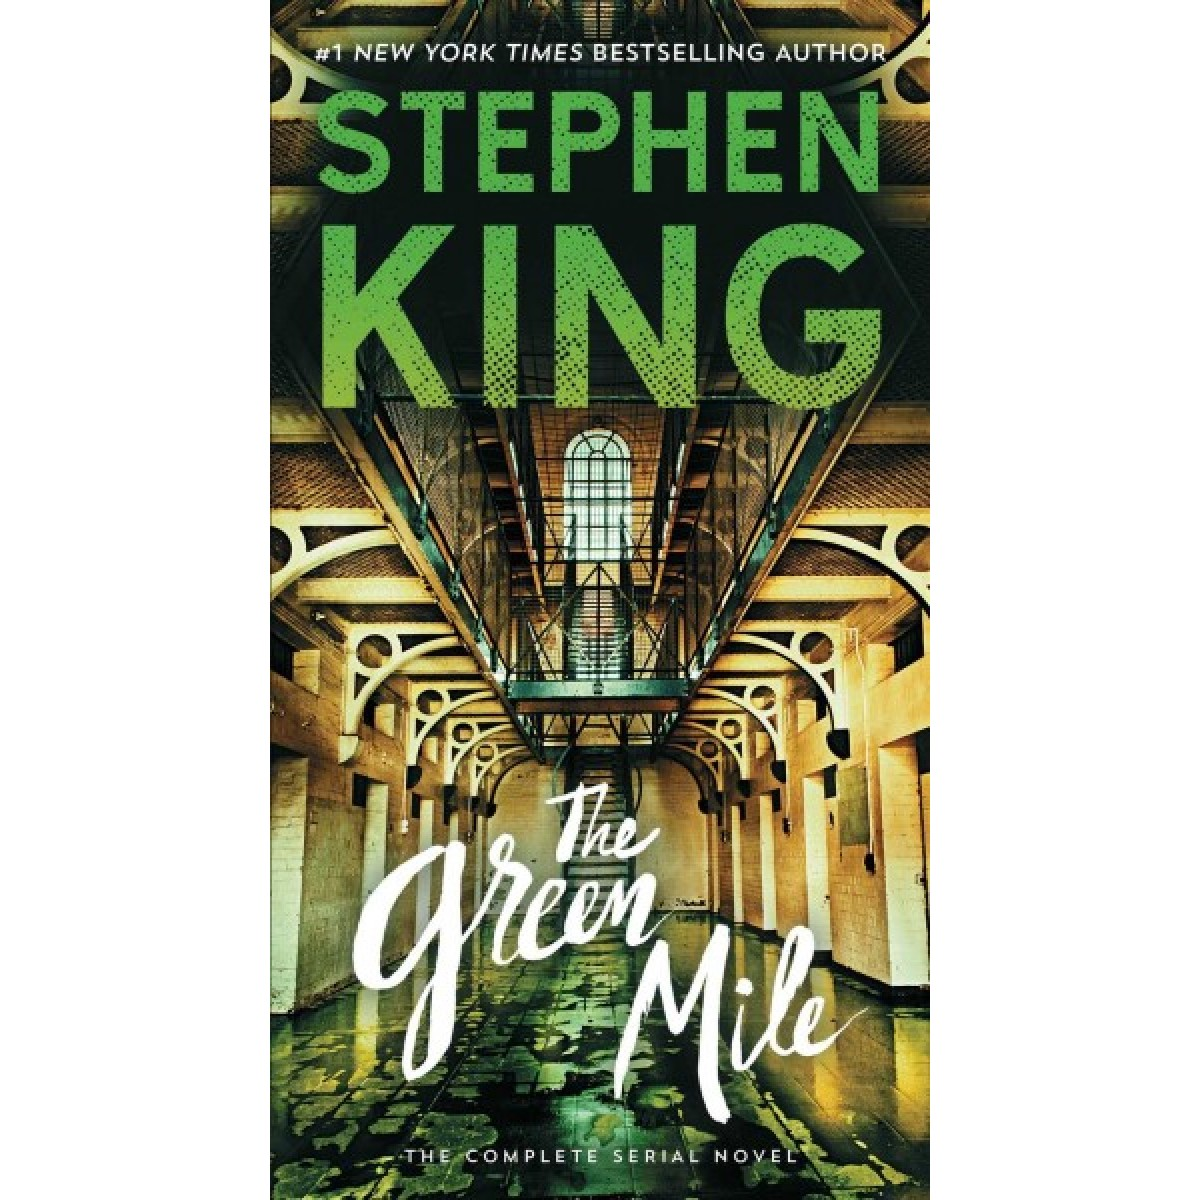 an analysis of the novel the green mile by stephen king Screenplay: frank darabont (based on the novel by stephen king) boy, is there a lot of urine running through the green mile  not one but three major characters have scenes or entire subplots related to the evacuation of their bladders.